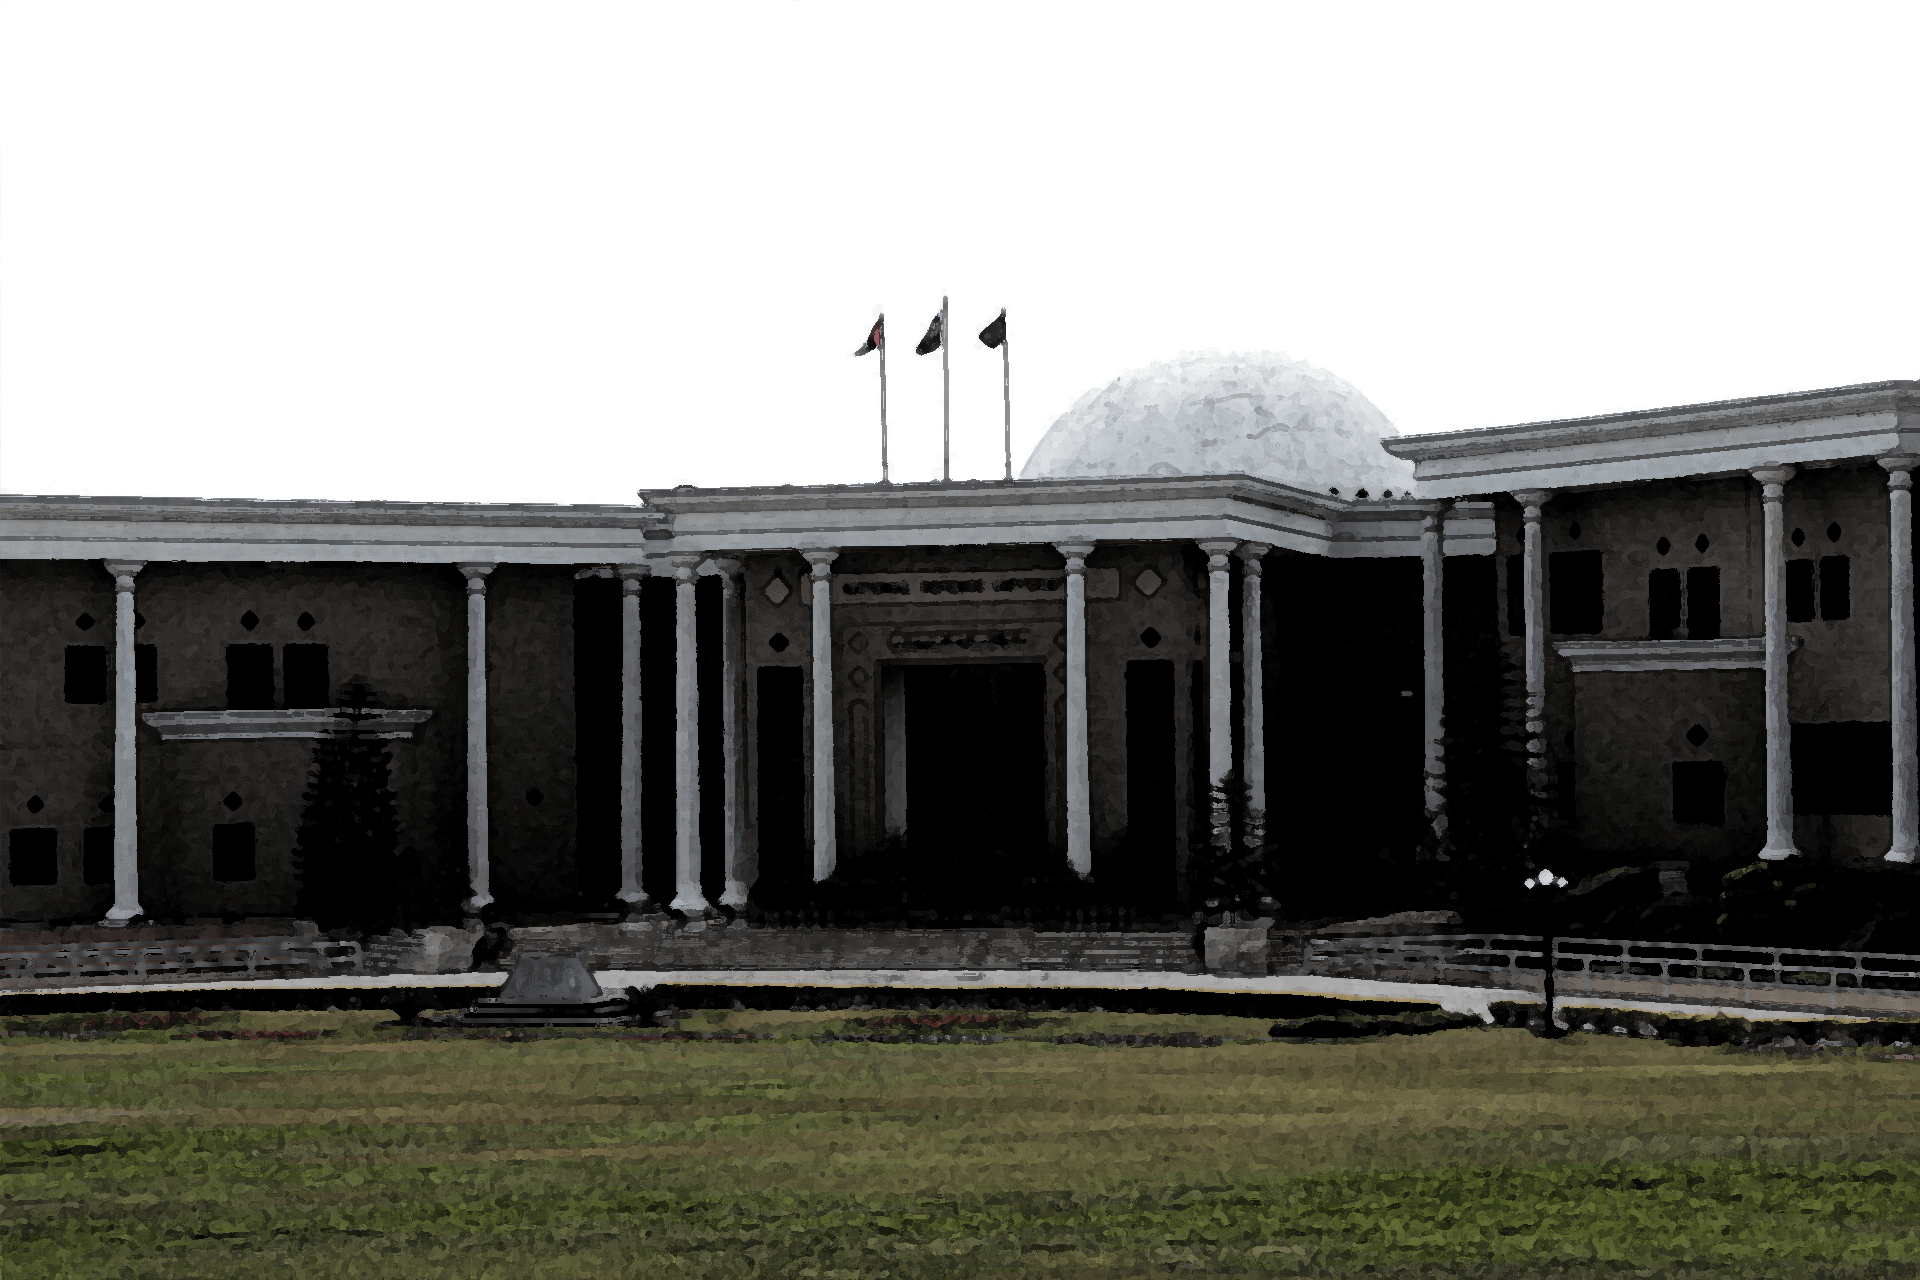 NDU Islamabad: Here's Everything You Need To Know About It